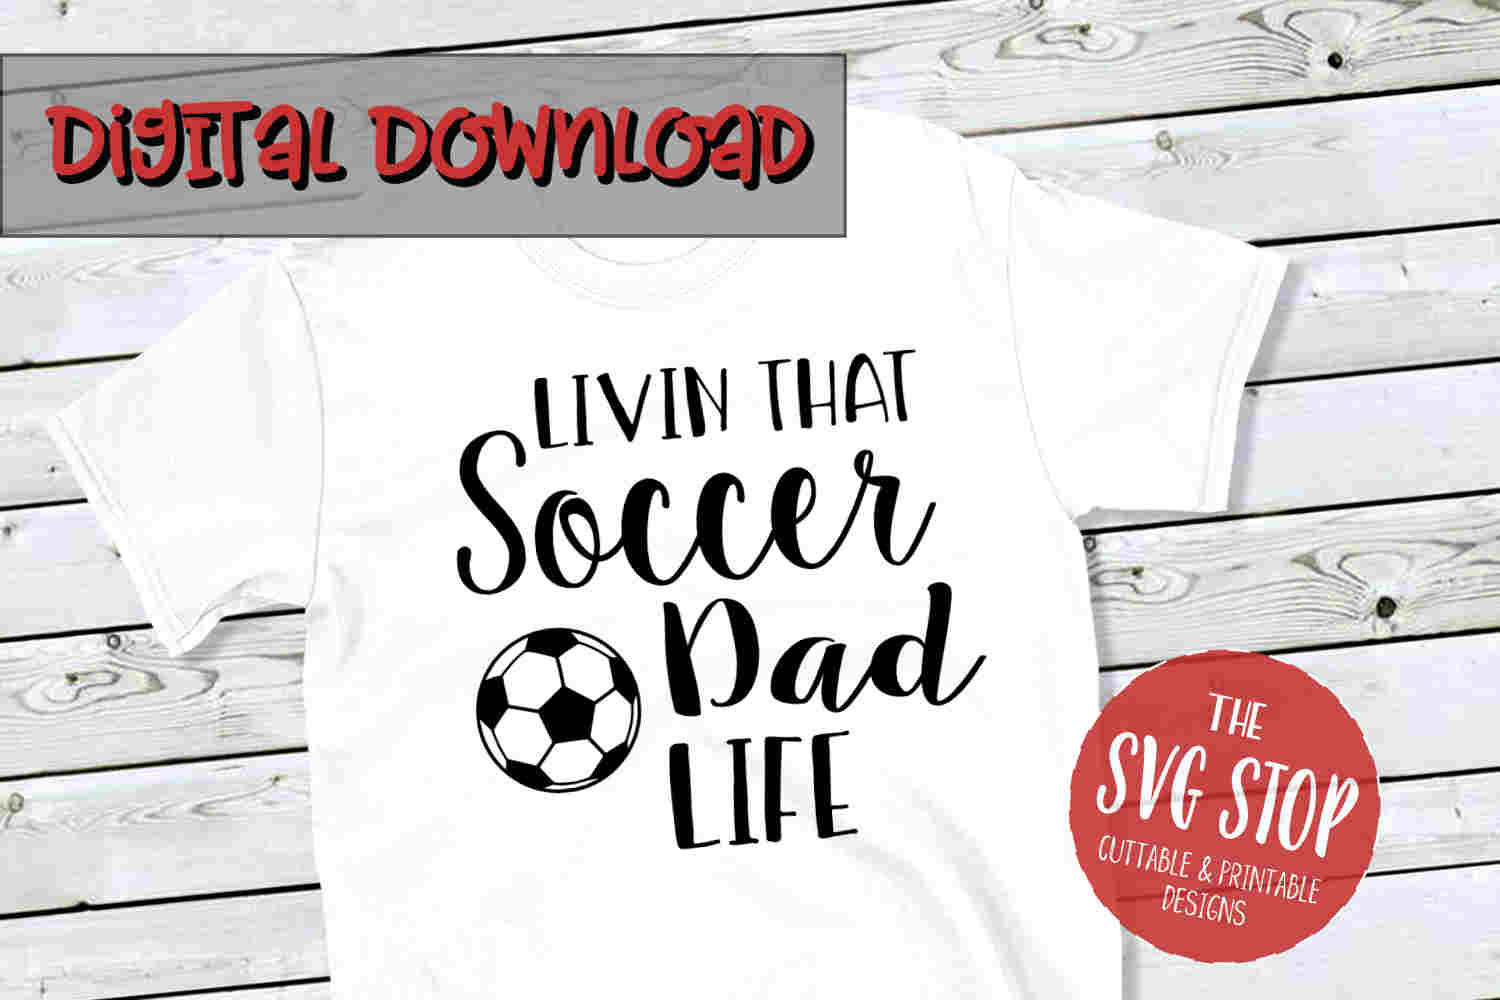 Soccer Dad Life -SVG, PNG, DXF example image 1